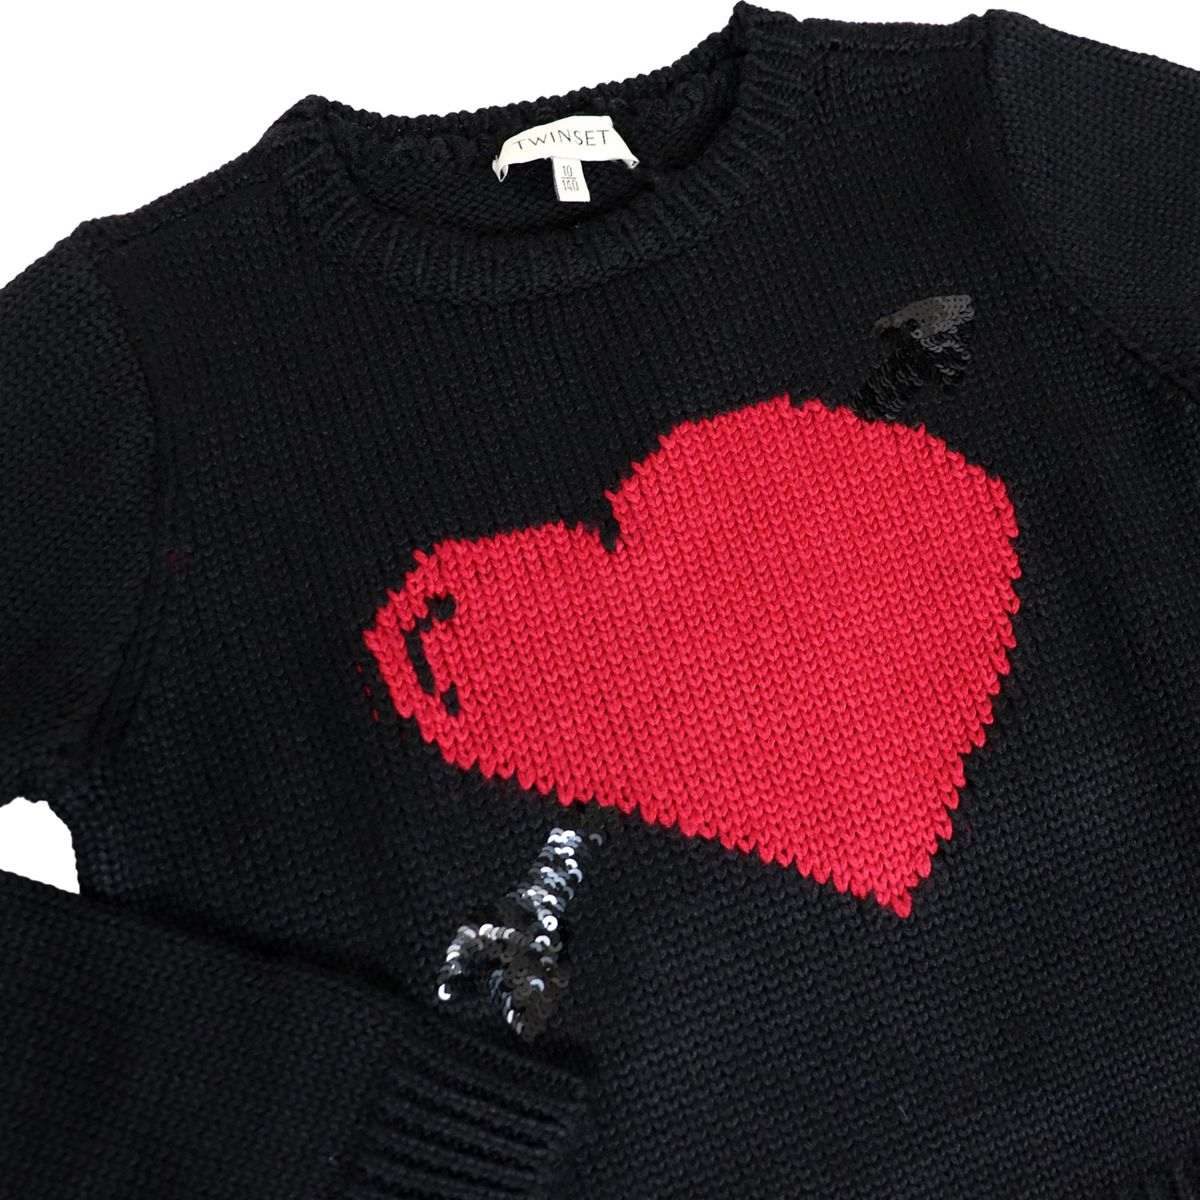 Wool blend sweater with contrasting inlay heart Black Twin-Set